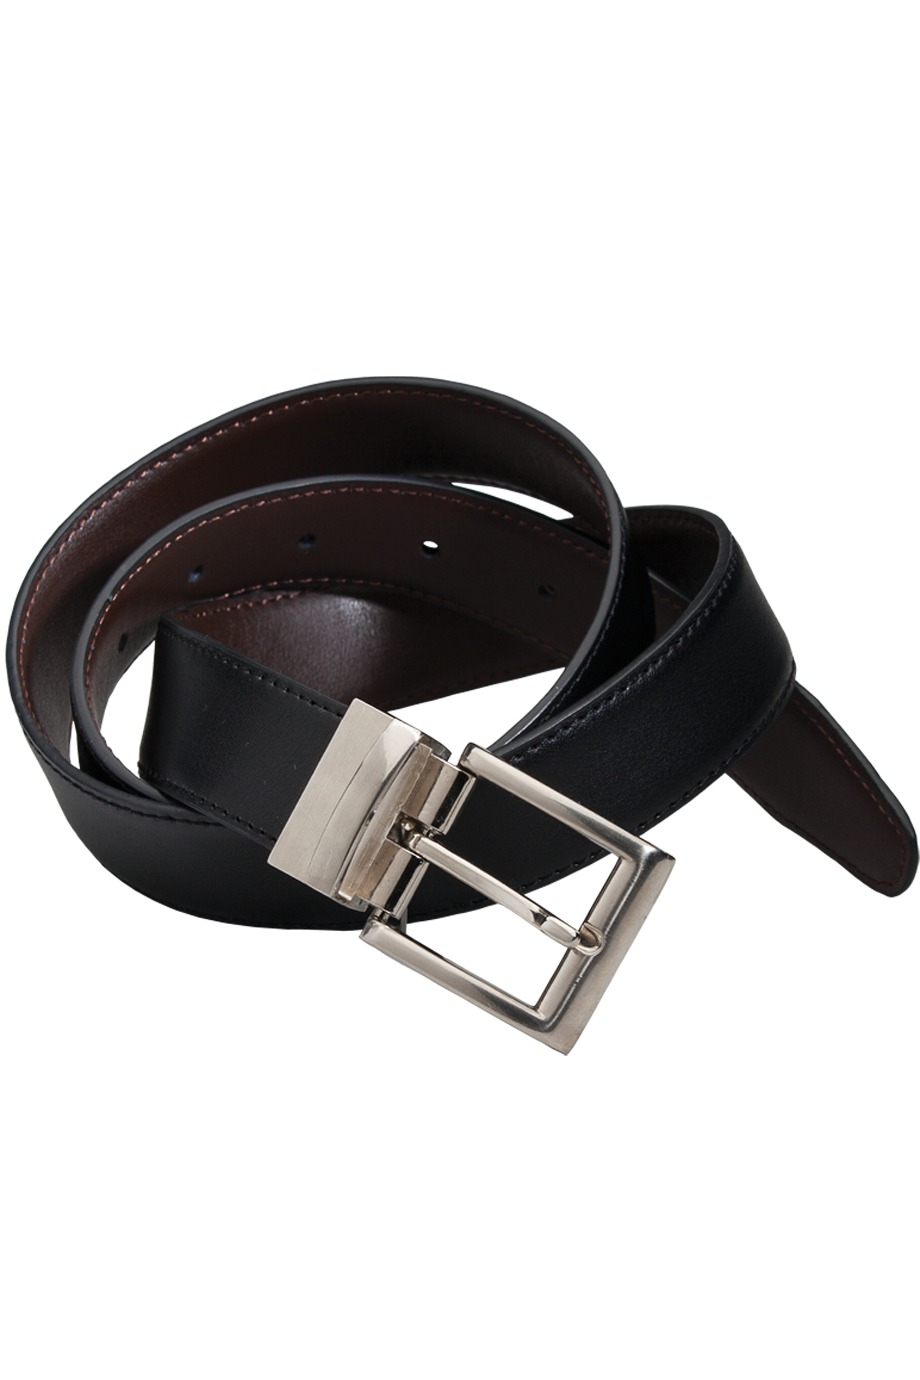 Edwards Garment RB00 - Reversible Leather Belt